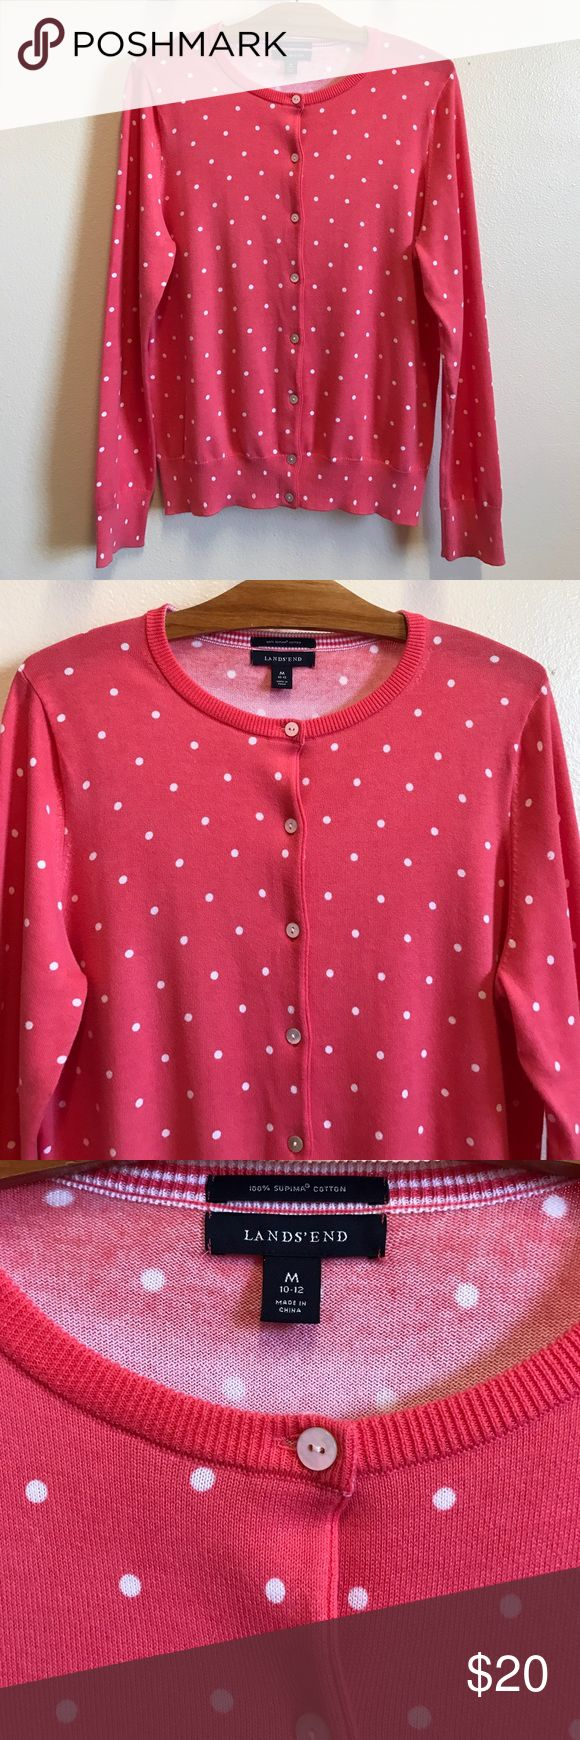 Lands' End Supima Cardigan Sweater women's Medium Lands' End Supima Print Cardigan Sweater women's size Medium. 100% Supima cotton. Coral polka dot. Excellent preowned condition. 🚫 trades, 🚫 off Posh sales. I'm happy to consider reasonable offers. Thank you! Lands' End Sweaters Cardigans